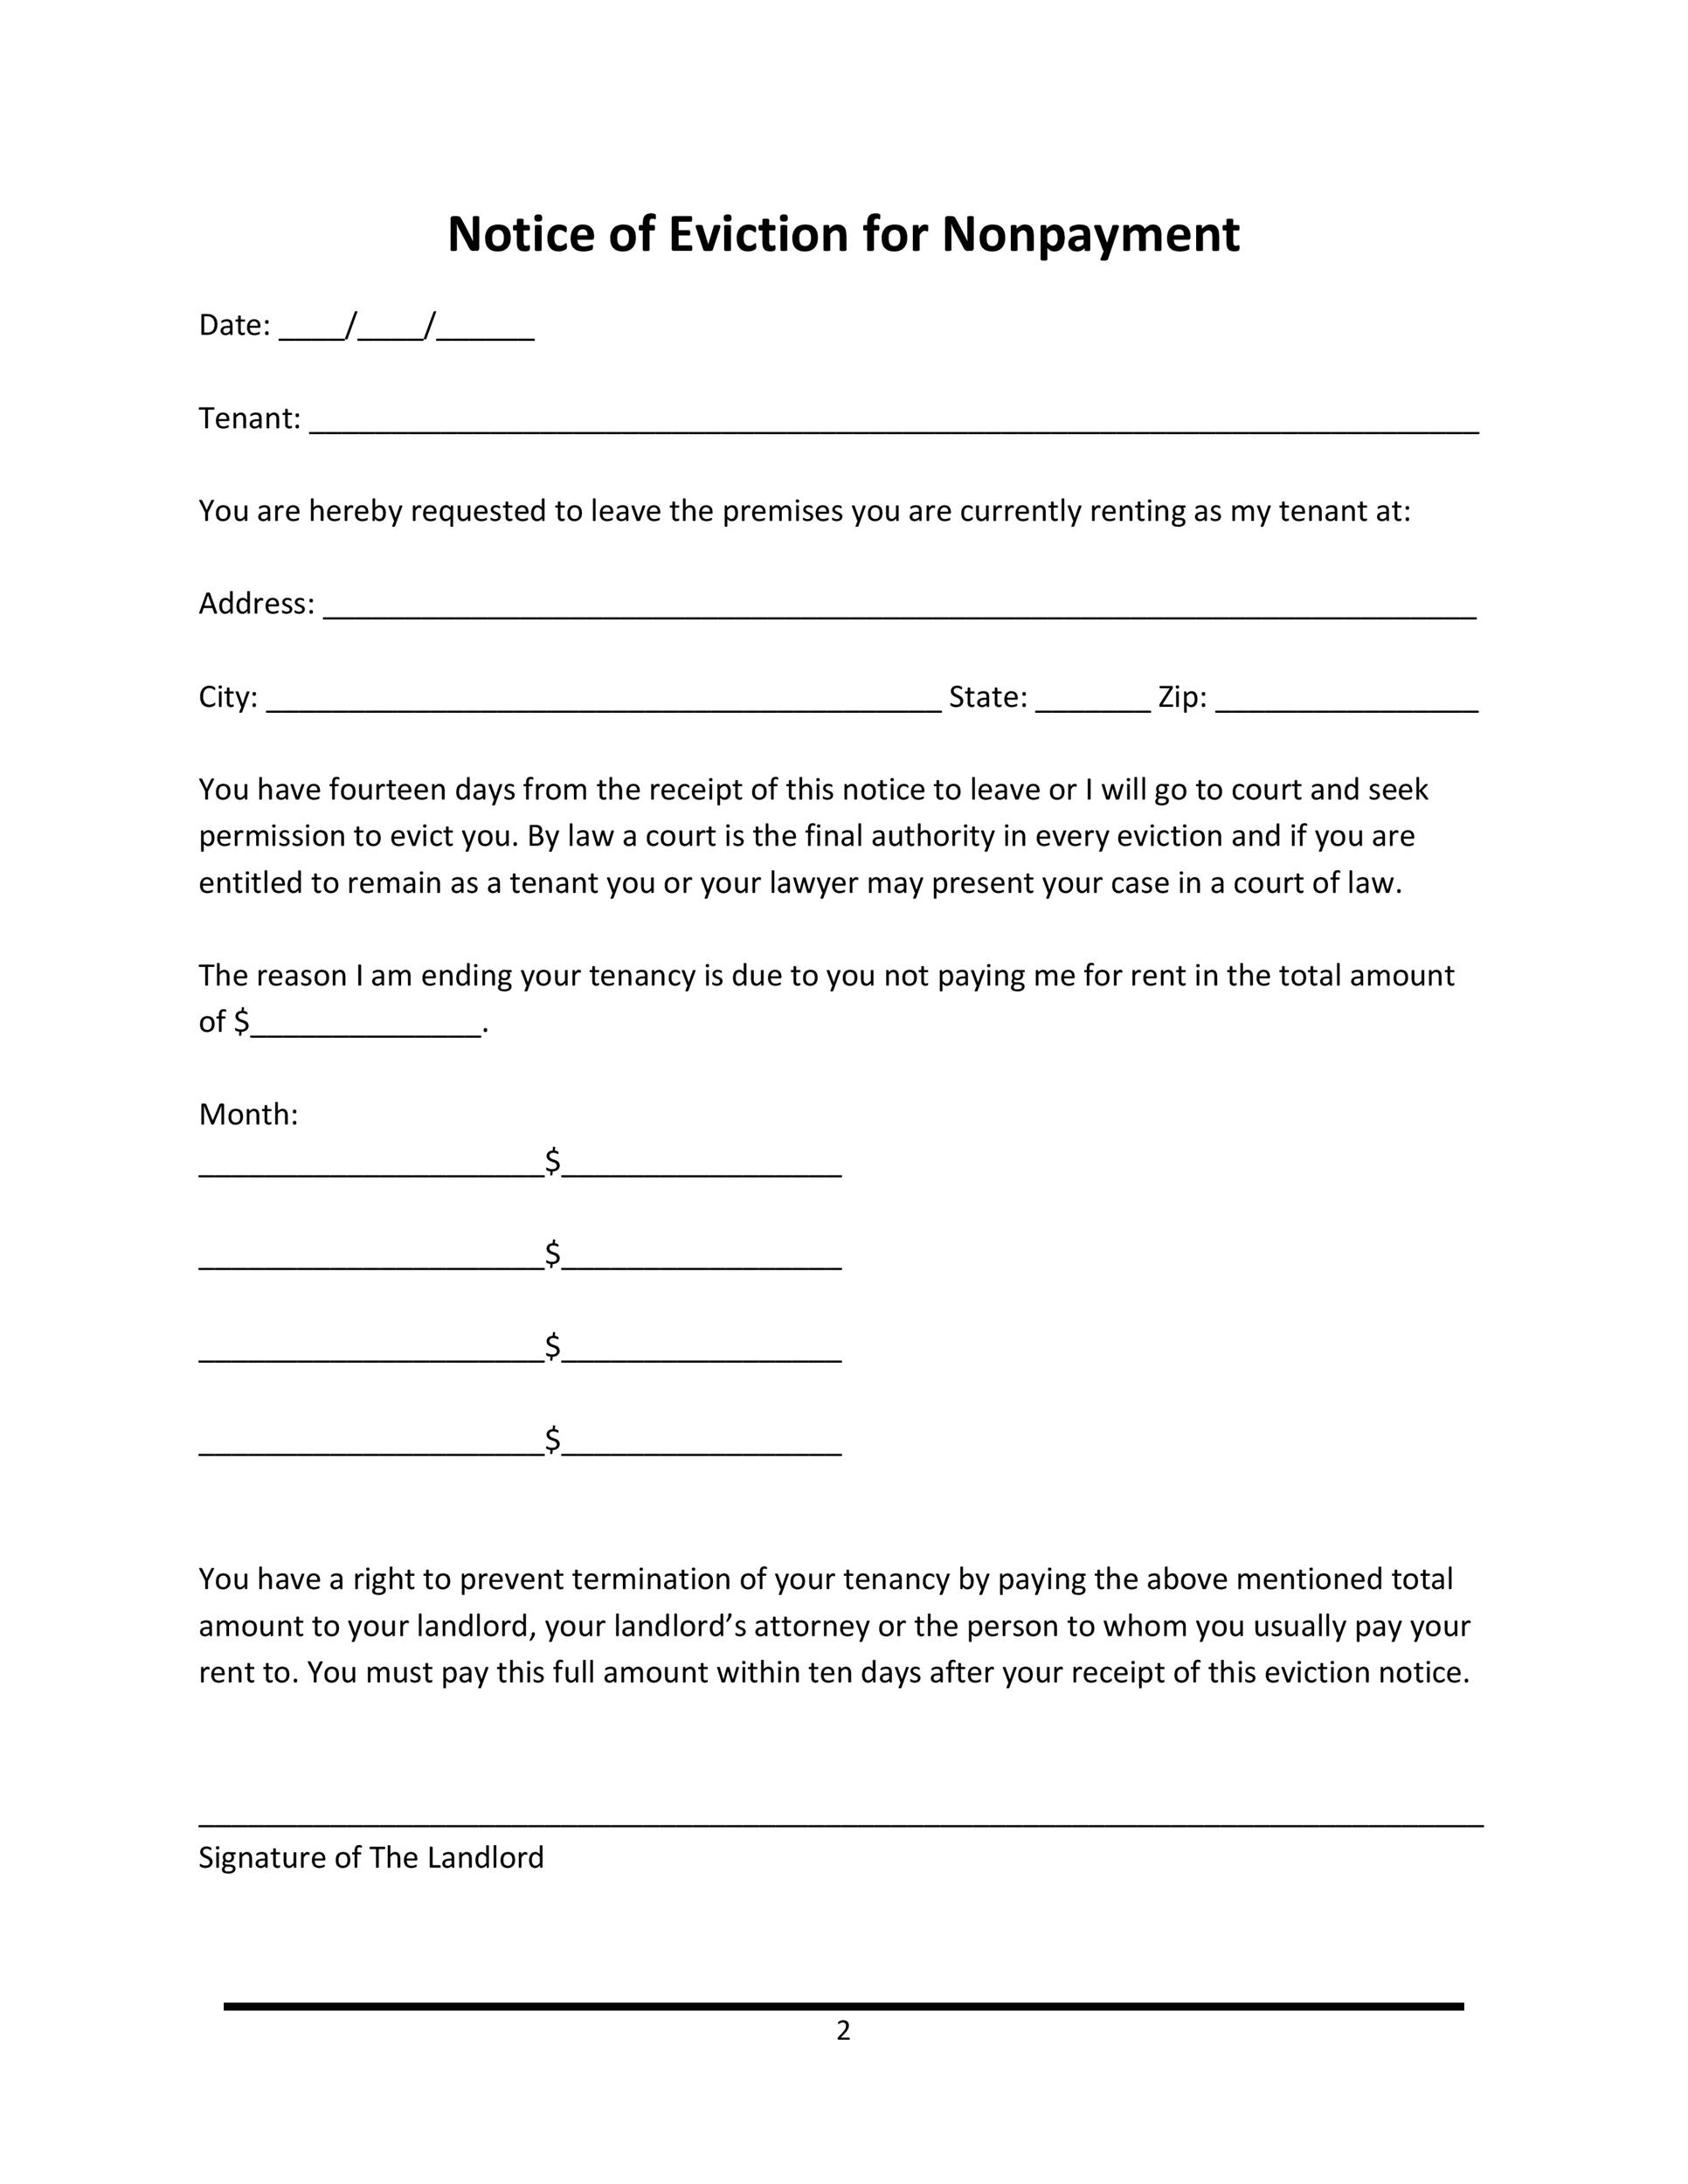 eviction notice templates - Termination Letter For Tenant From Landlord